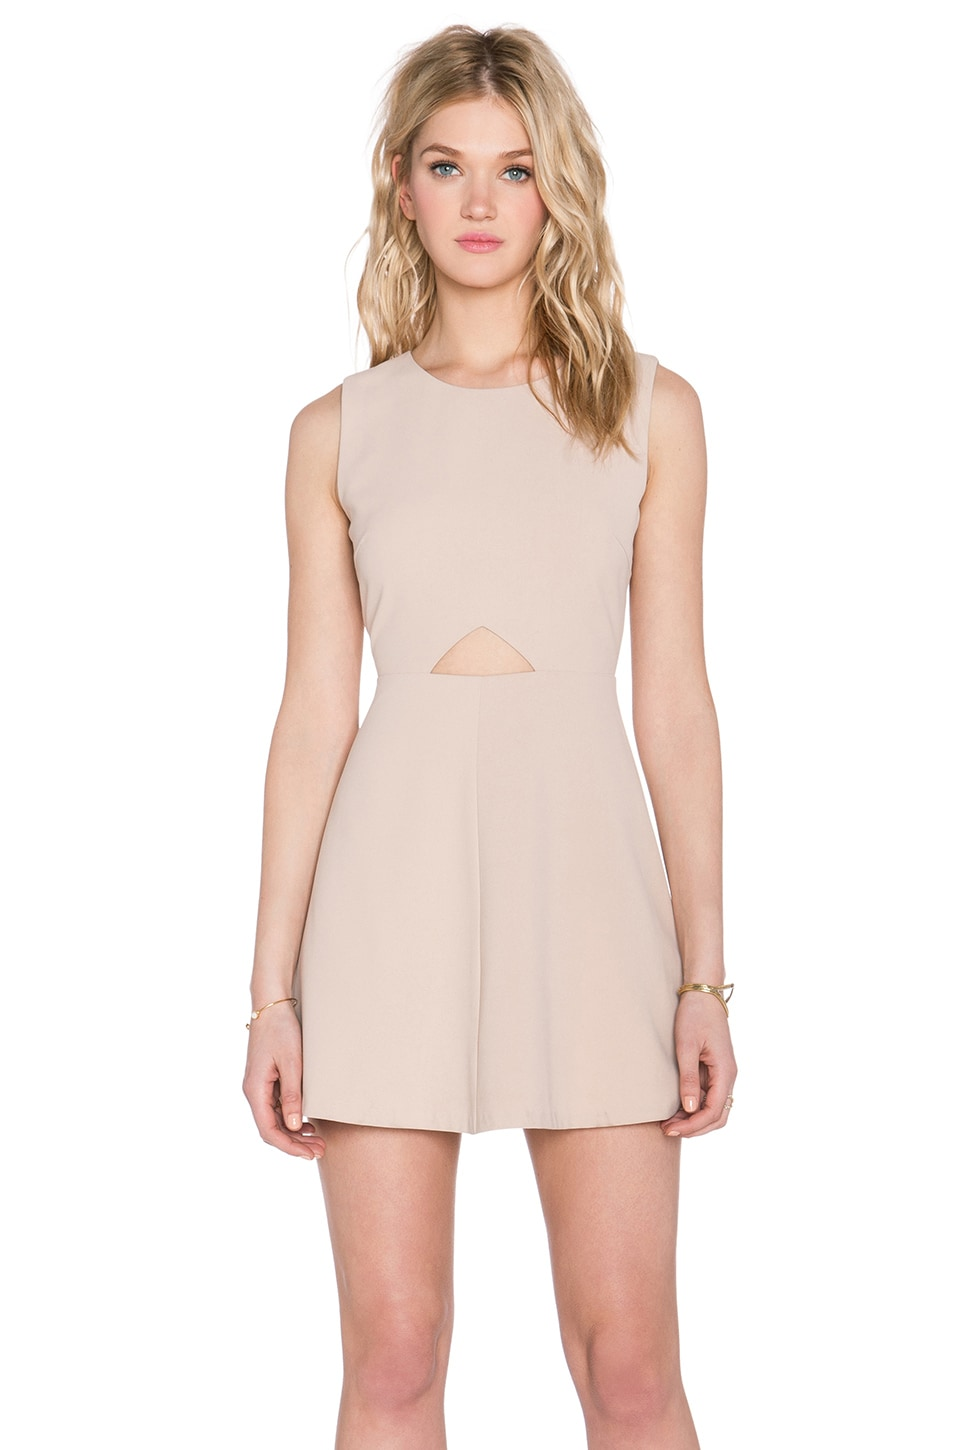 BLAQUE LABEL Cut Out Dress in Nude